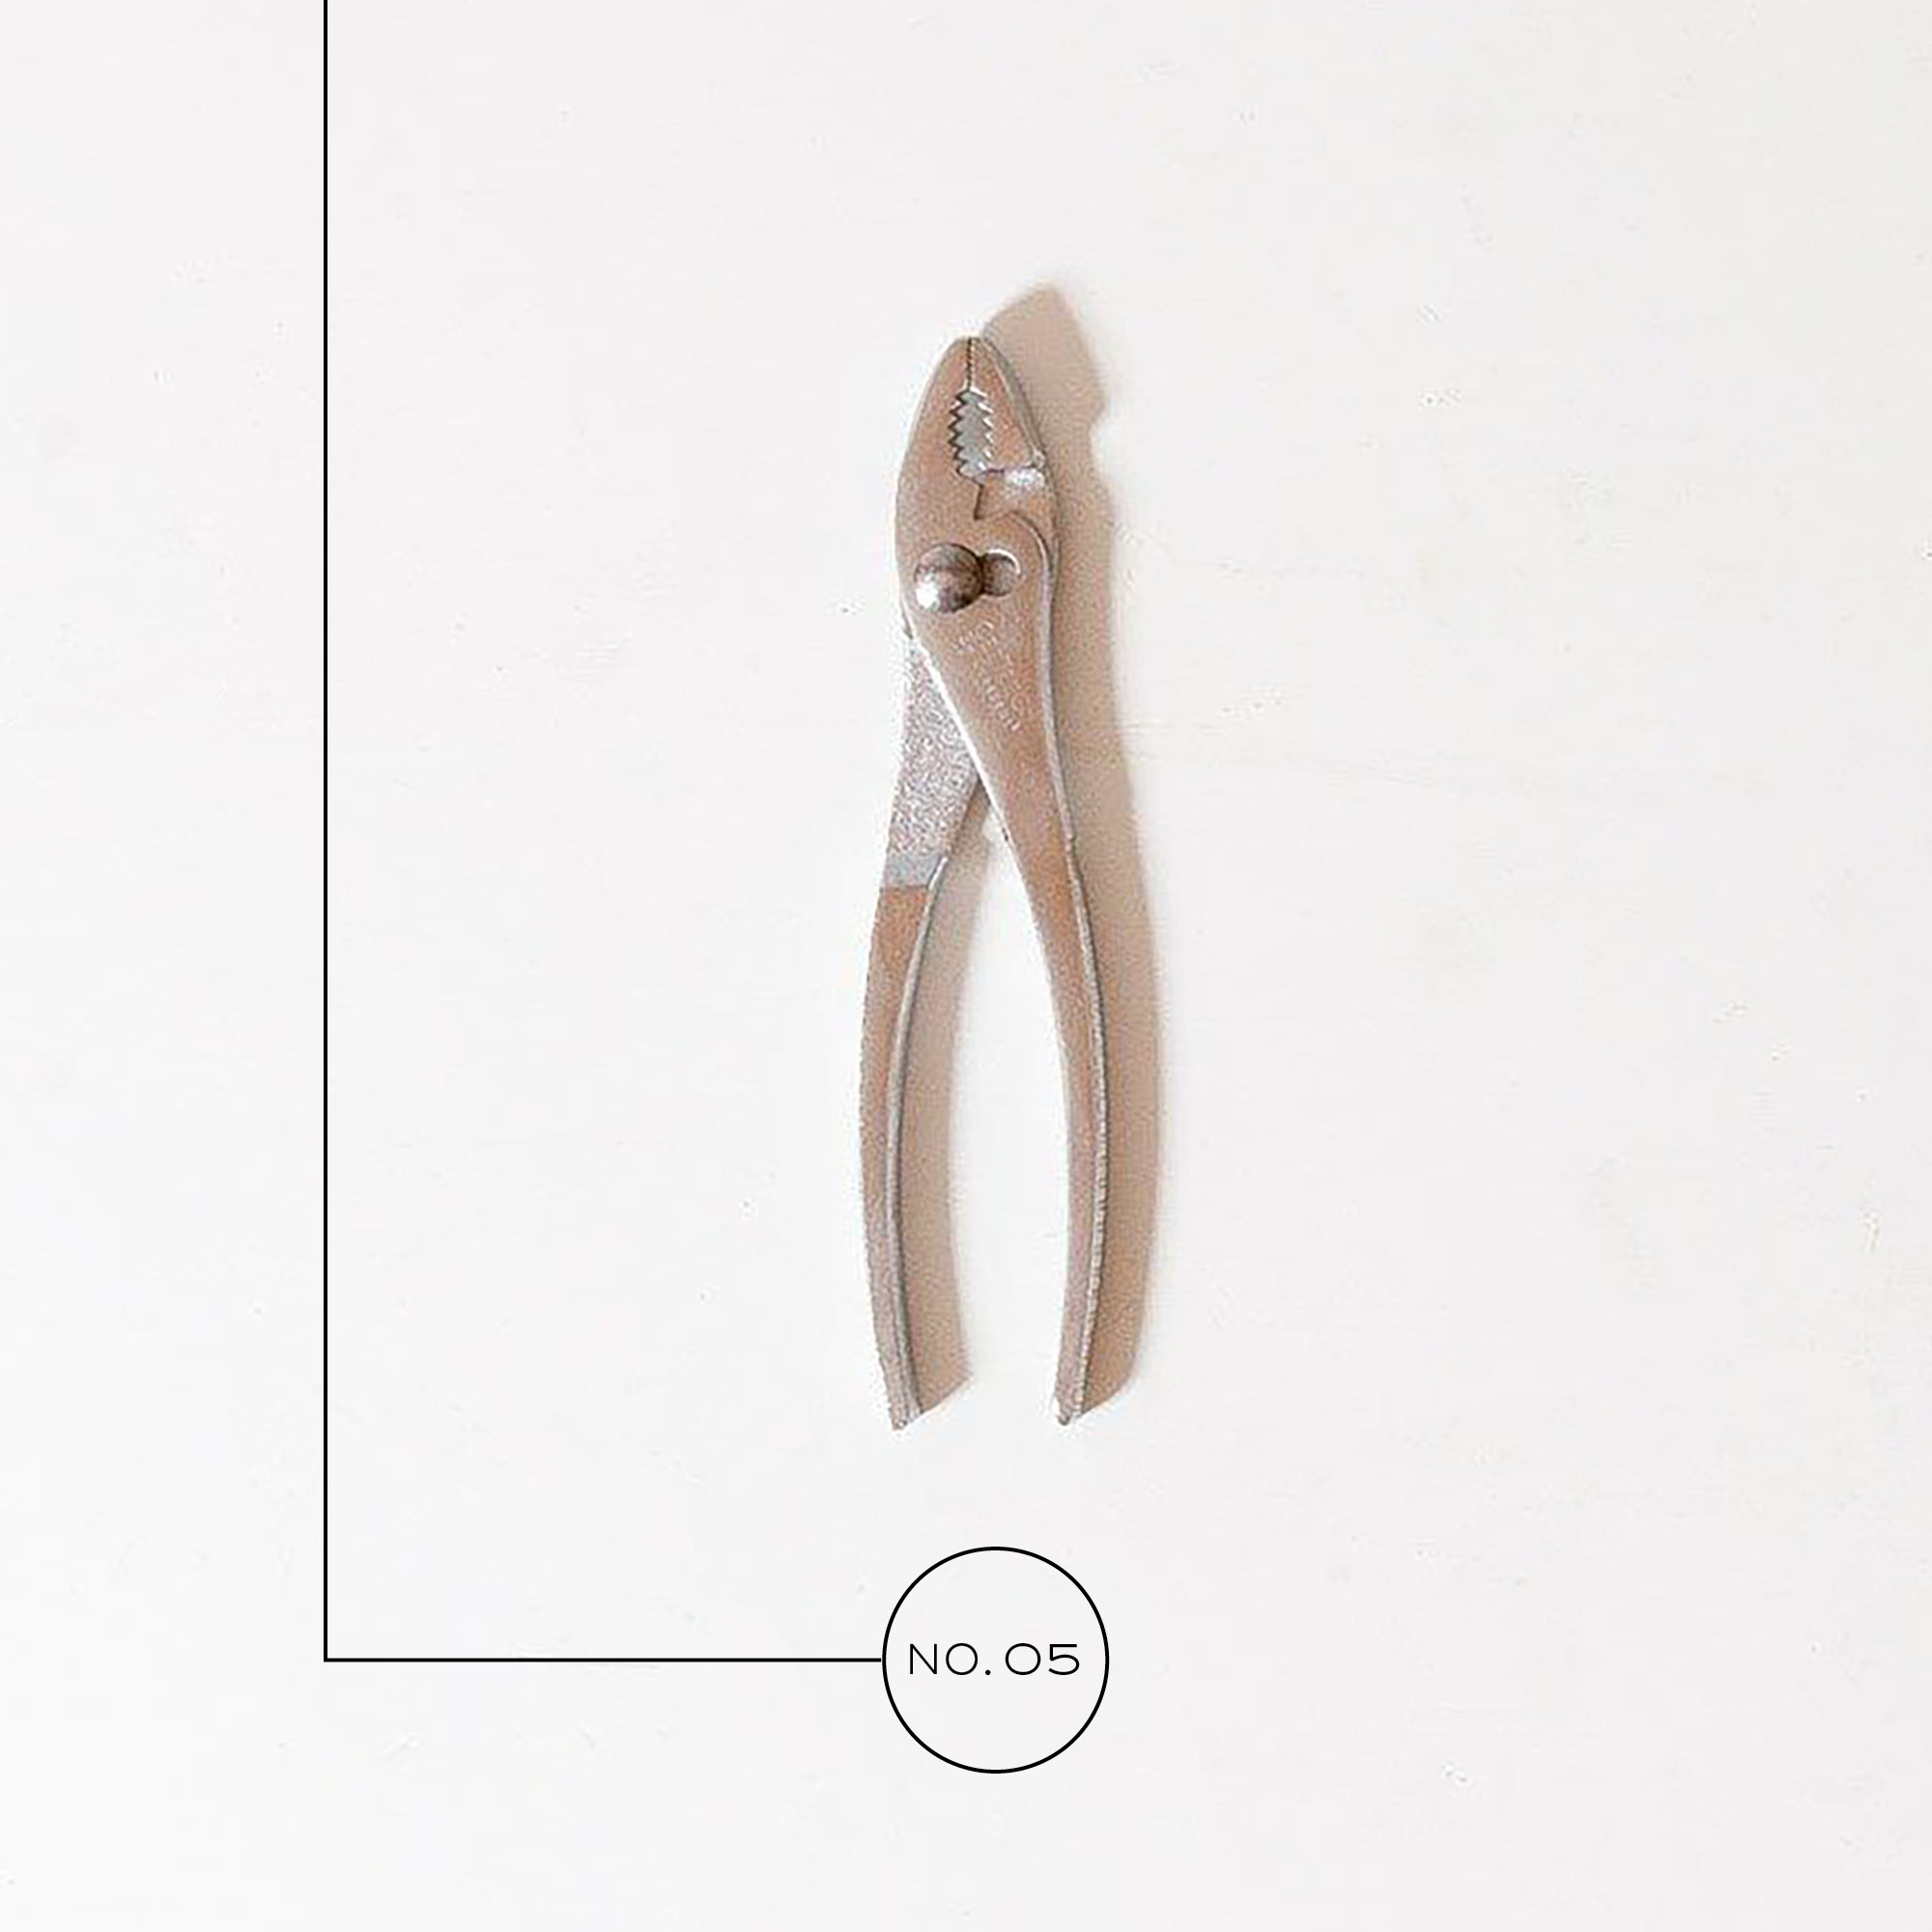 A photo of pliers on a white background.